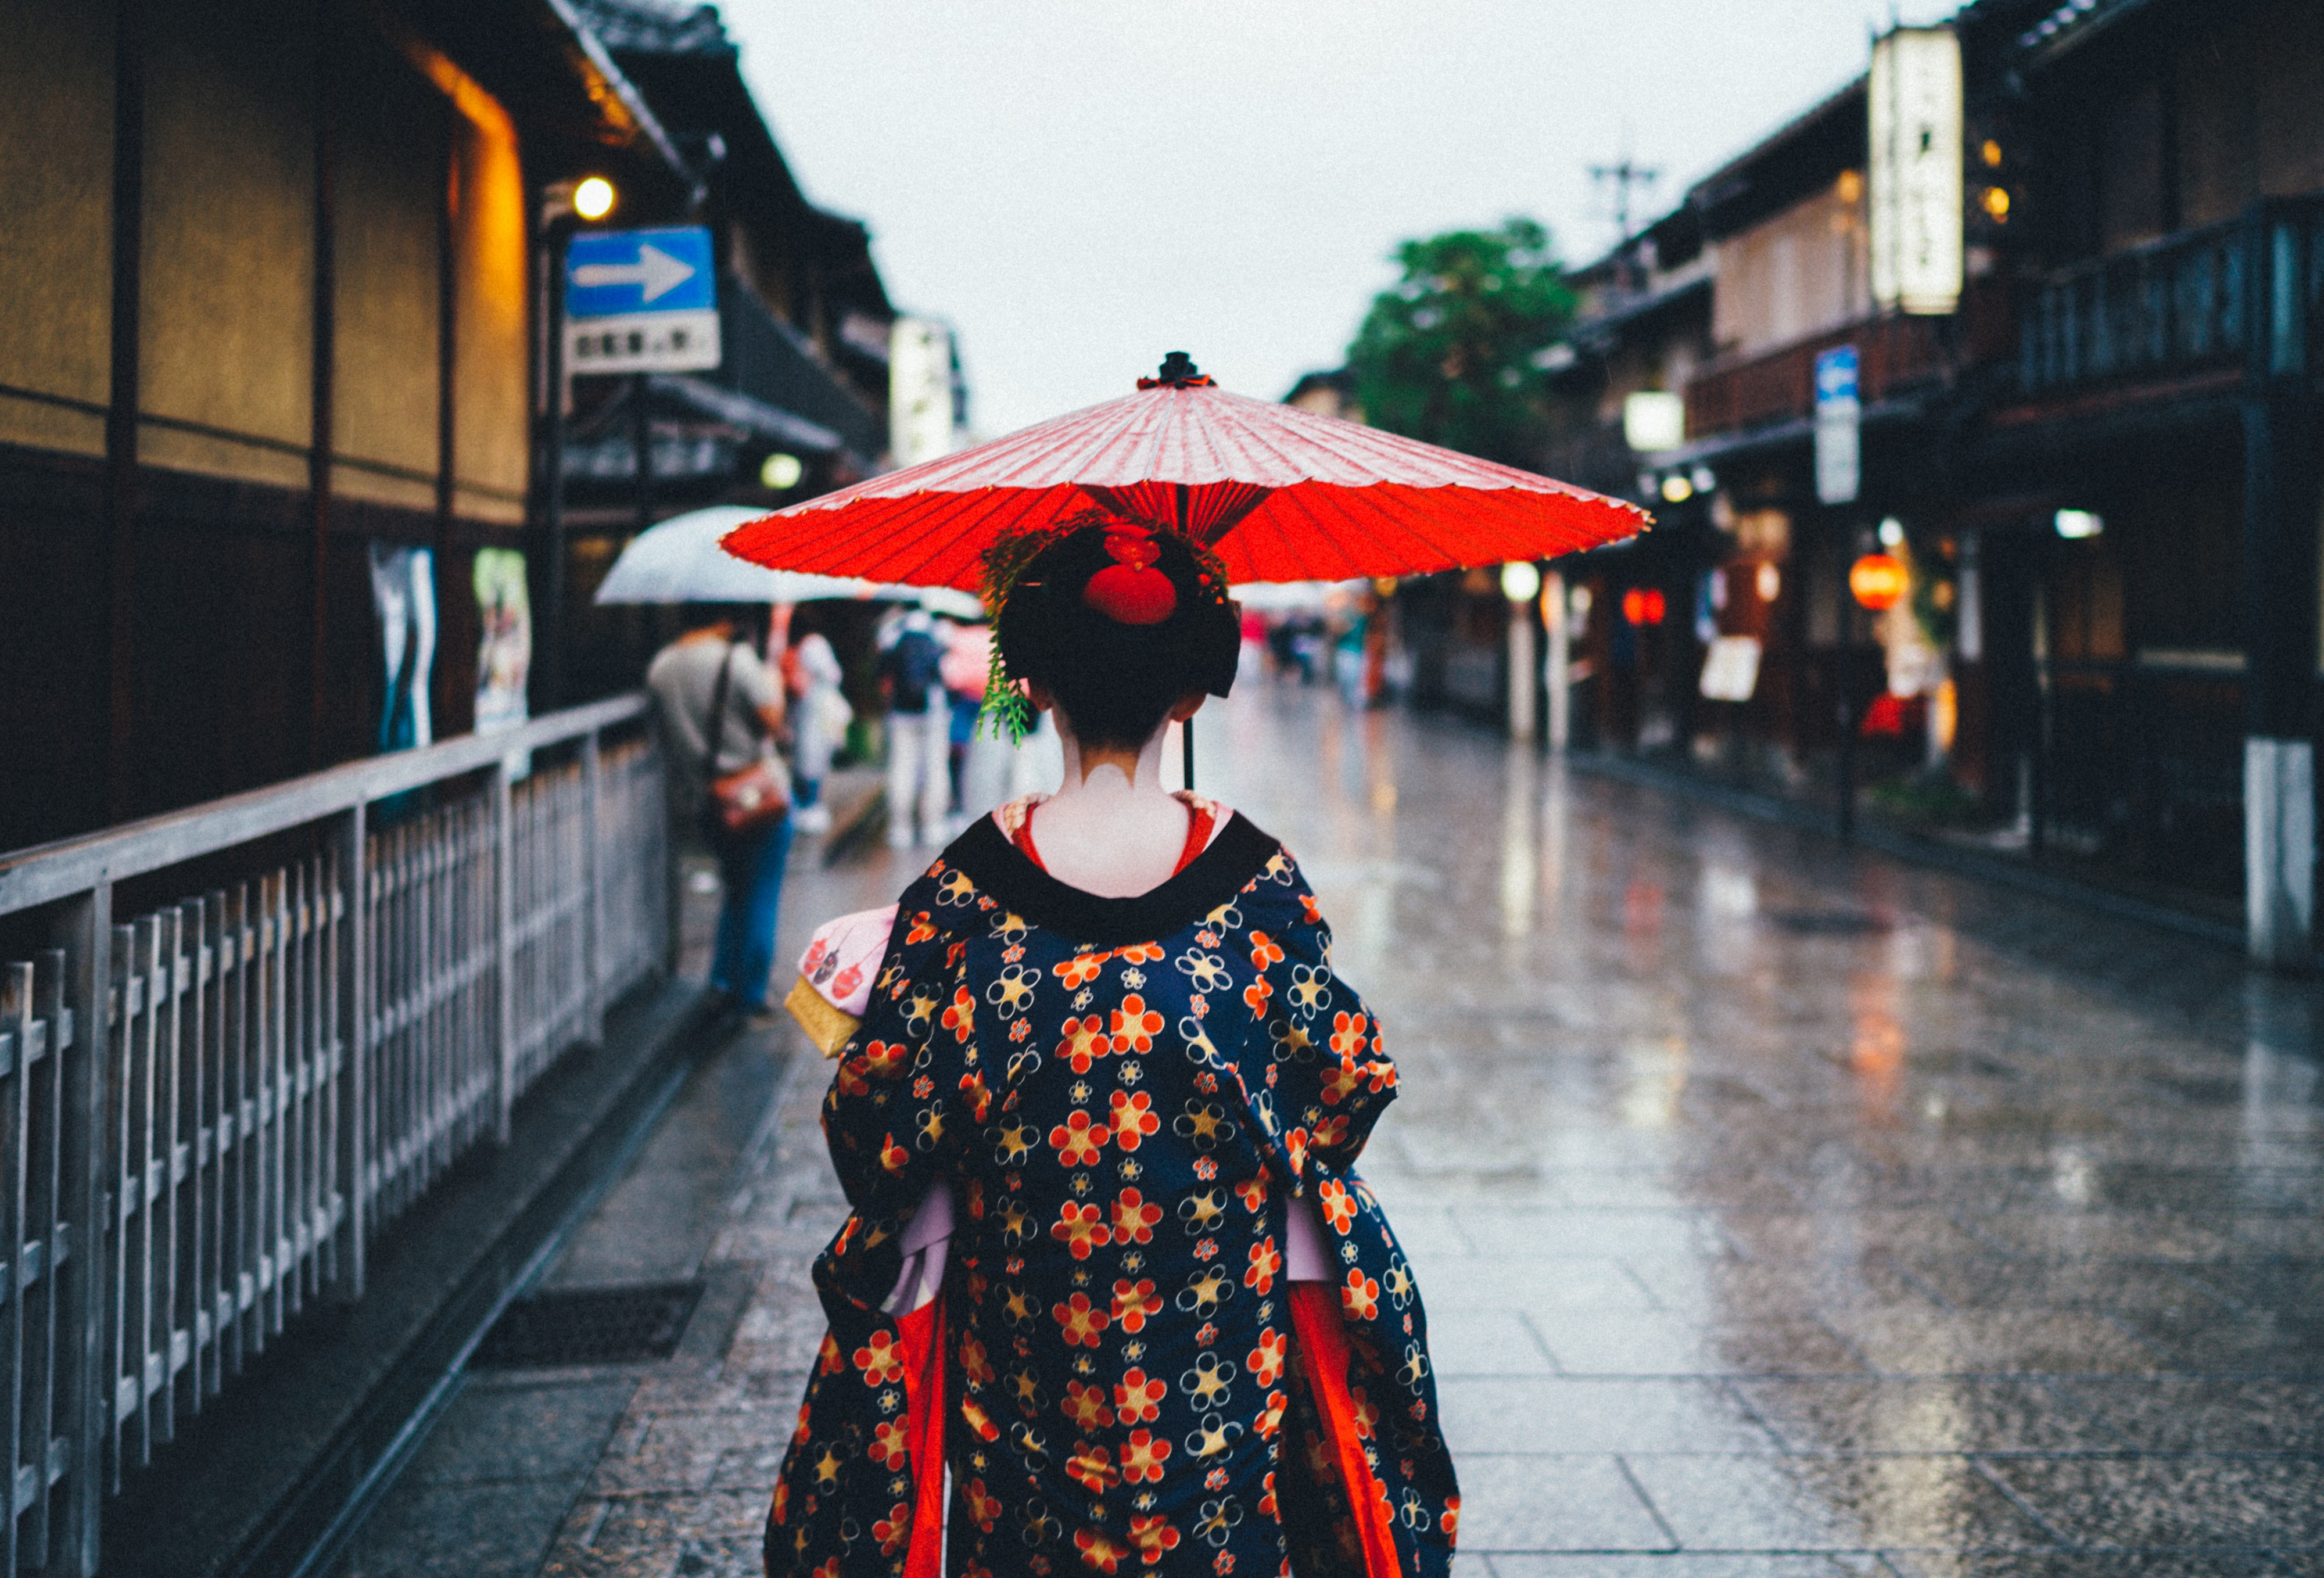 Review of The Pillow Book of Sei Shonagon. Photo by Sorasak of the back of a Japanese geisha walking down city street.